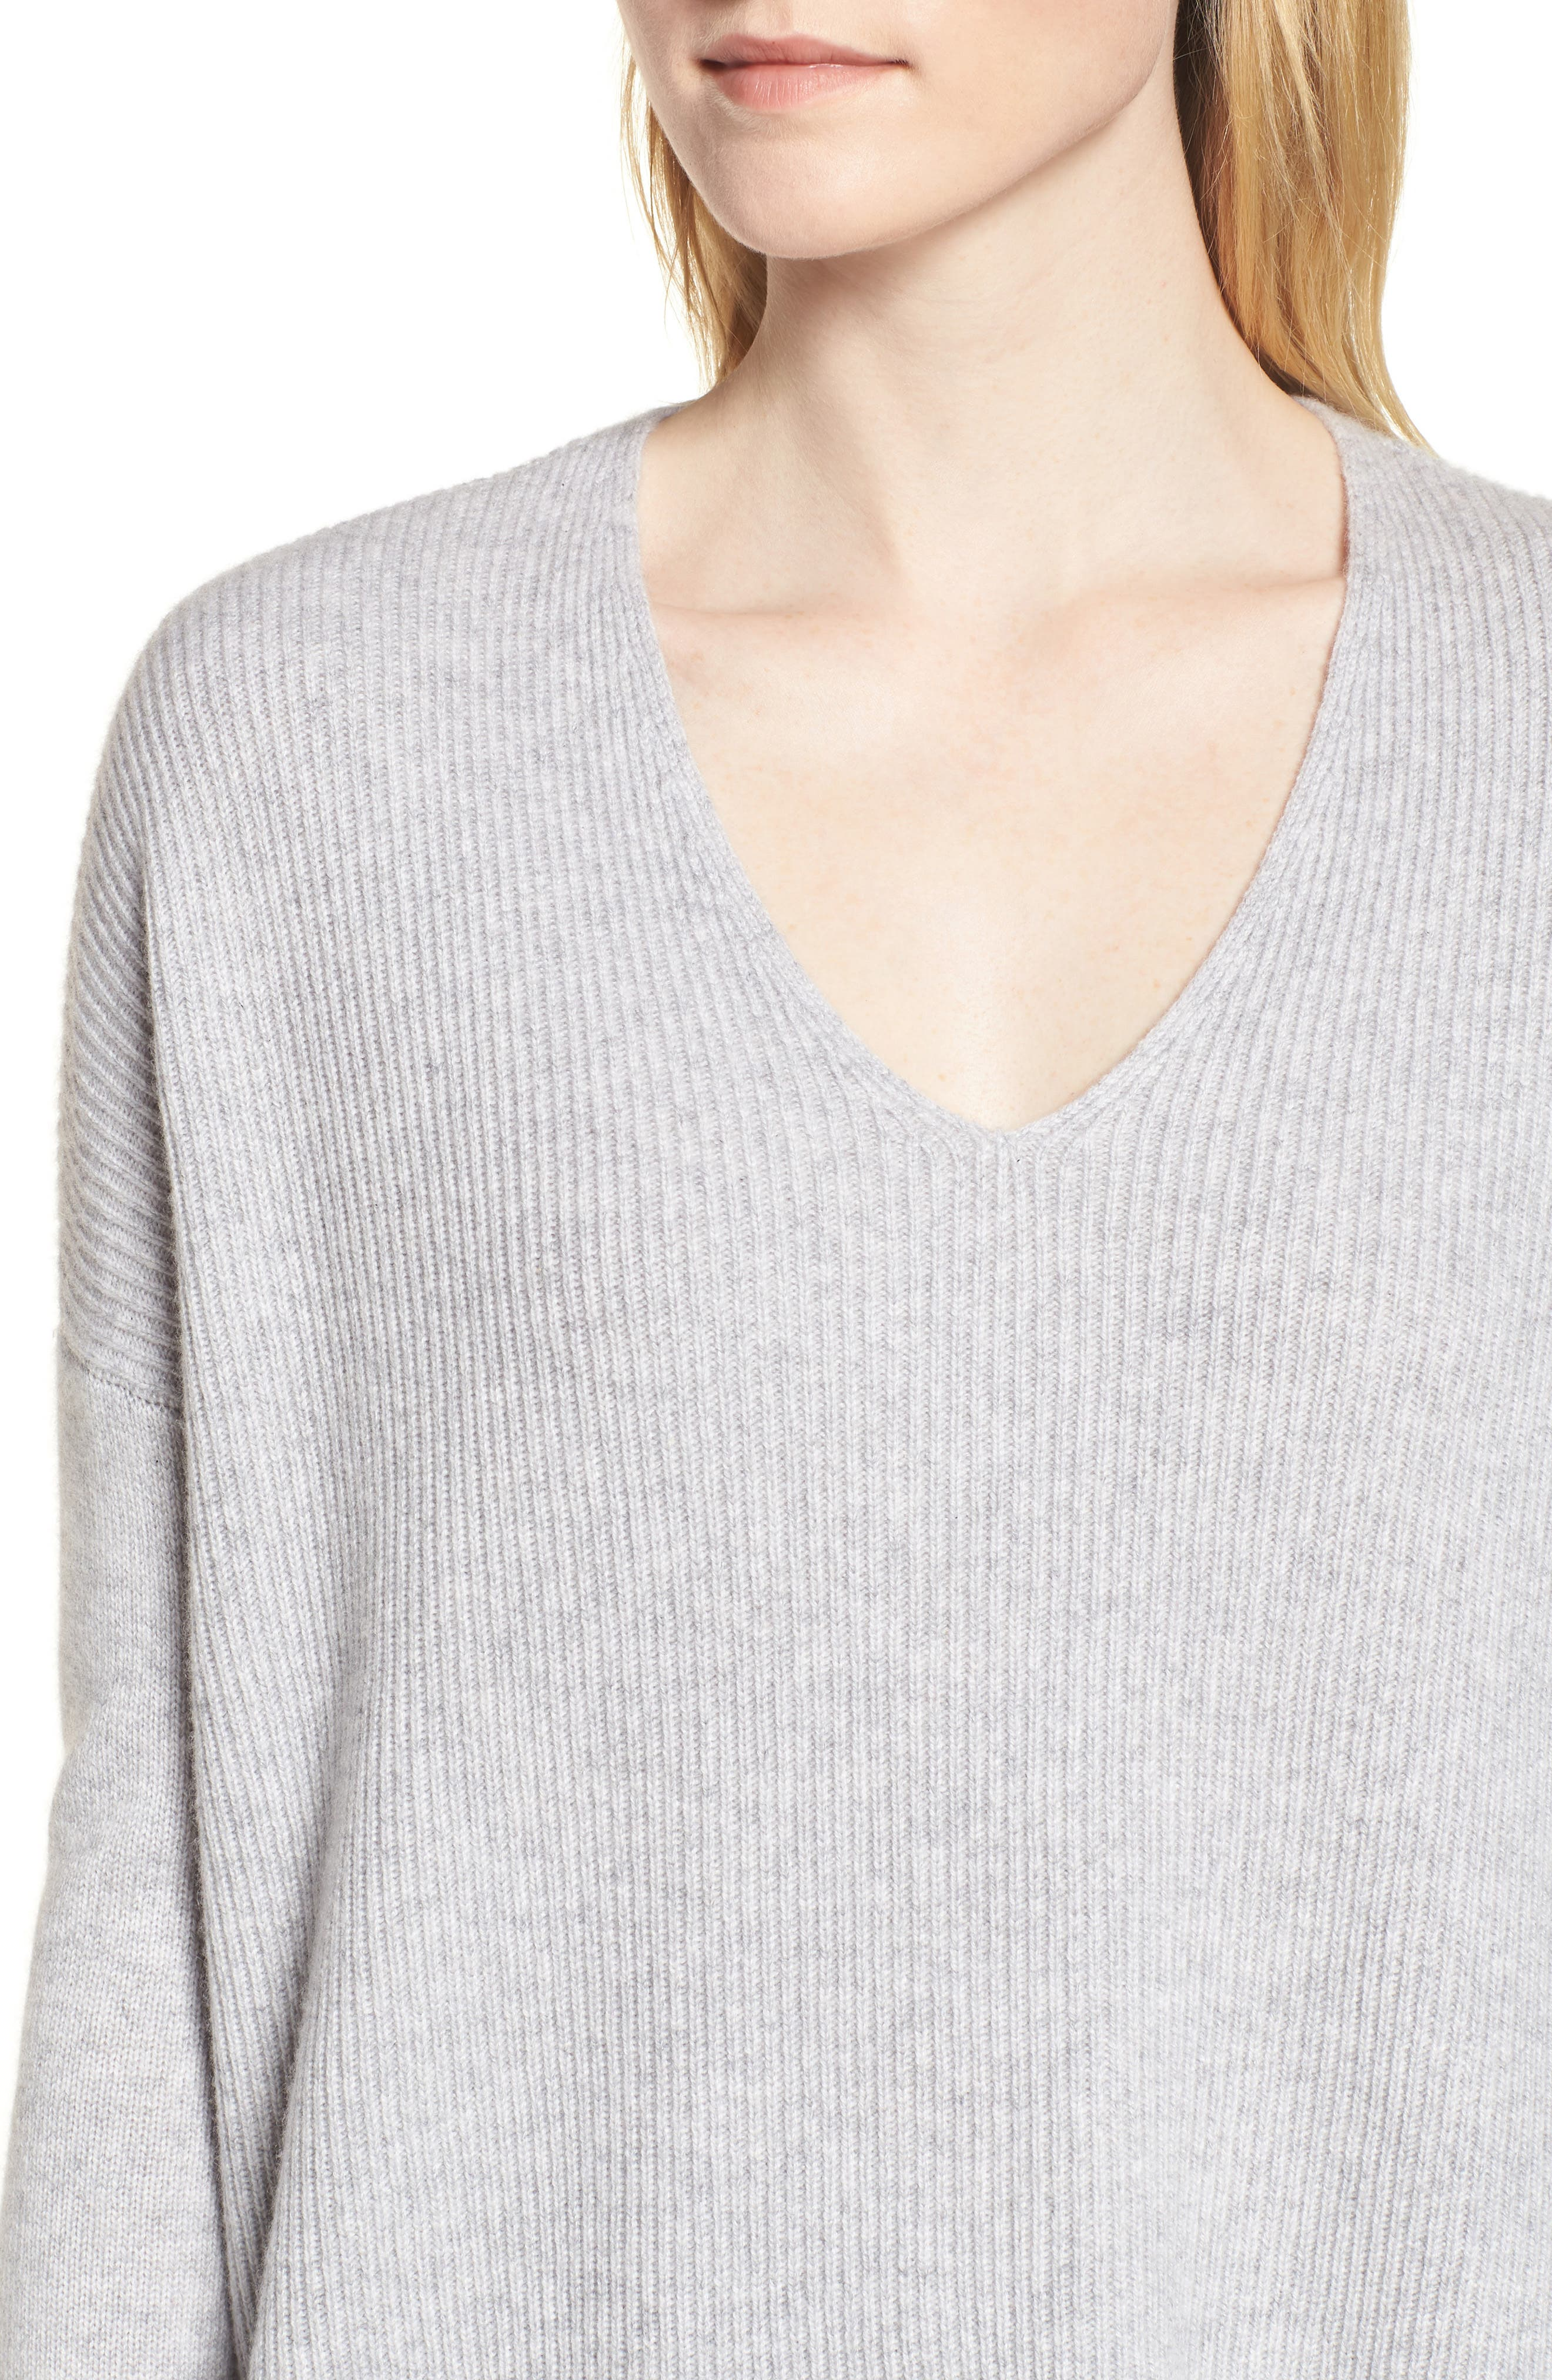 Cashmere Soft Ribbed Pullover Sweater,                             Alternate thumbnail 4, color,                             Grey Clay Heather